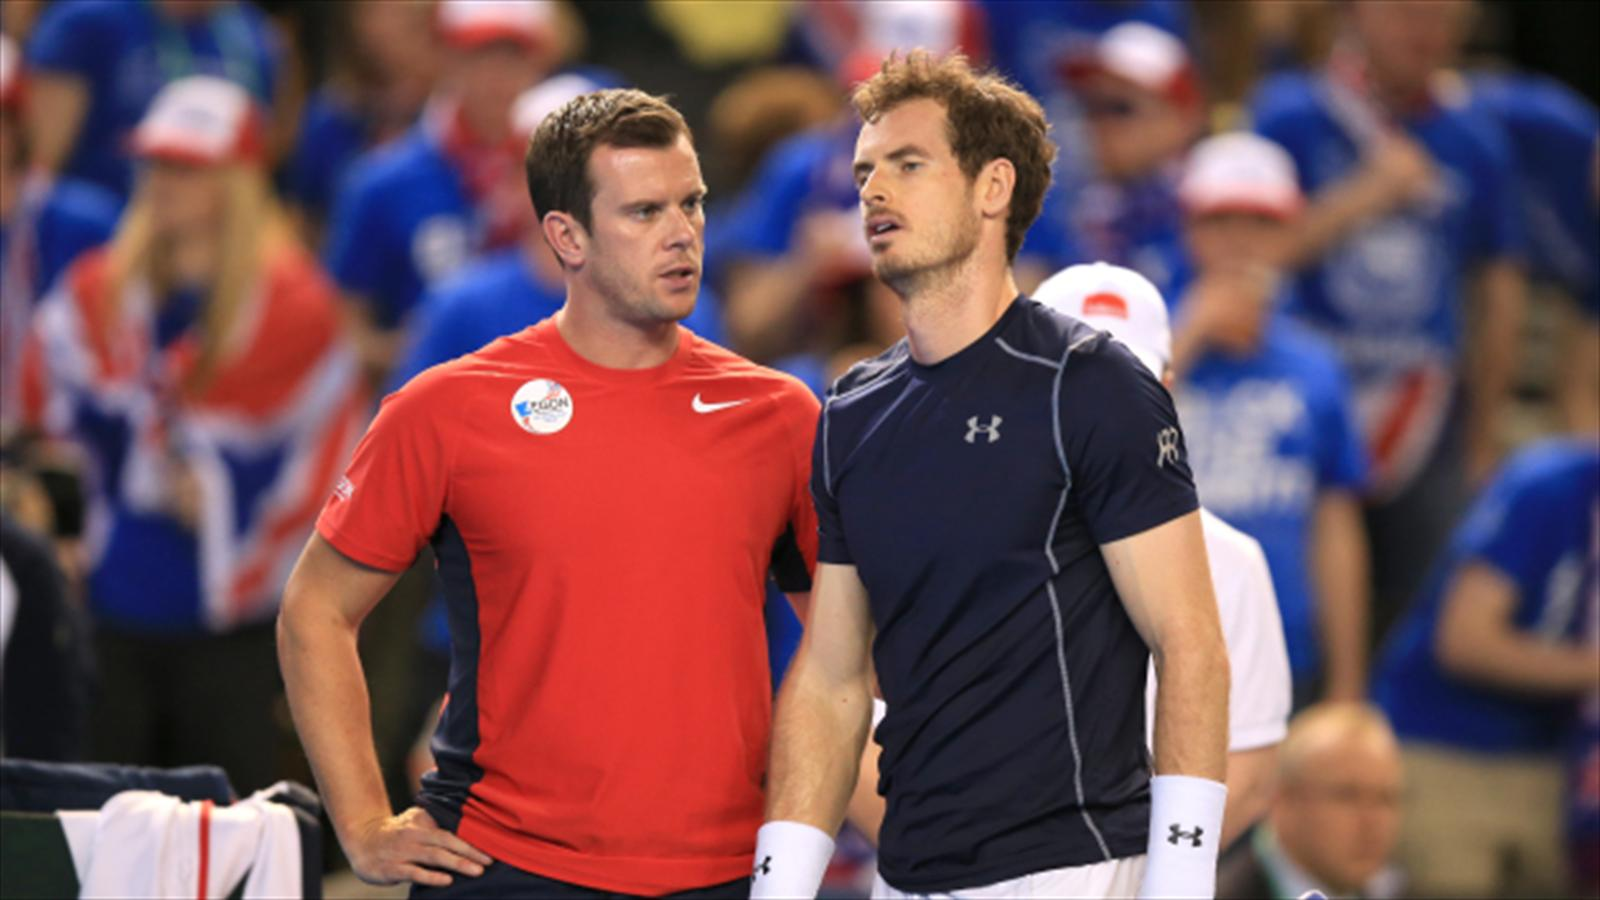 Leon smith confident davis cup team can triumph in canada - University league tables french ...